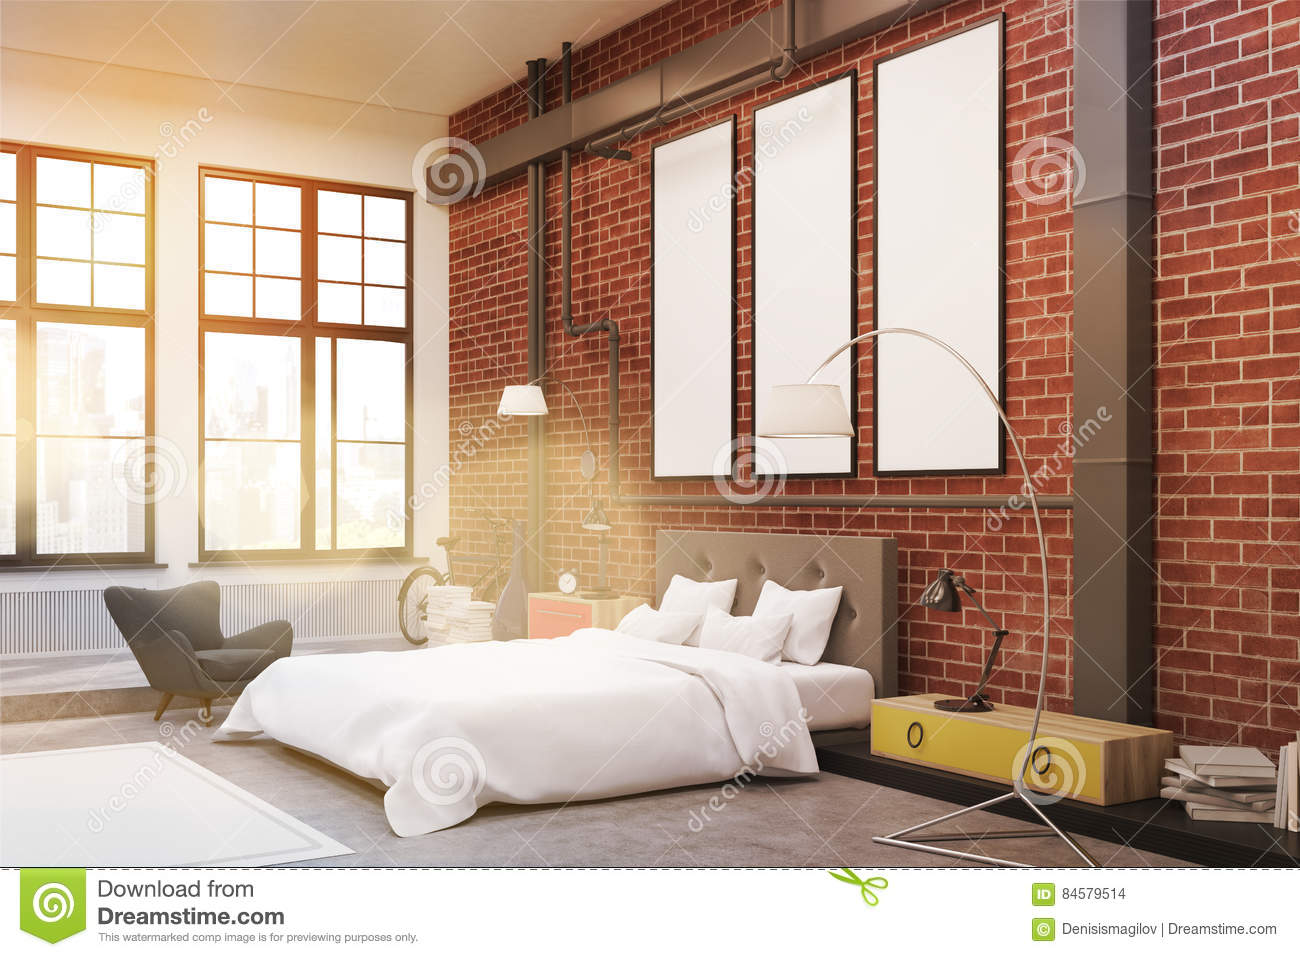 Corner Of Bedroom: Brick Walls And Posters, Toned Stock ...